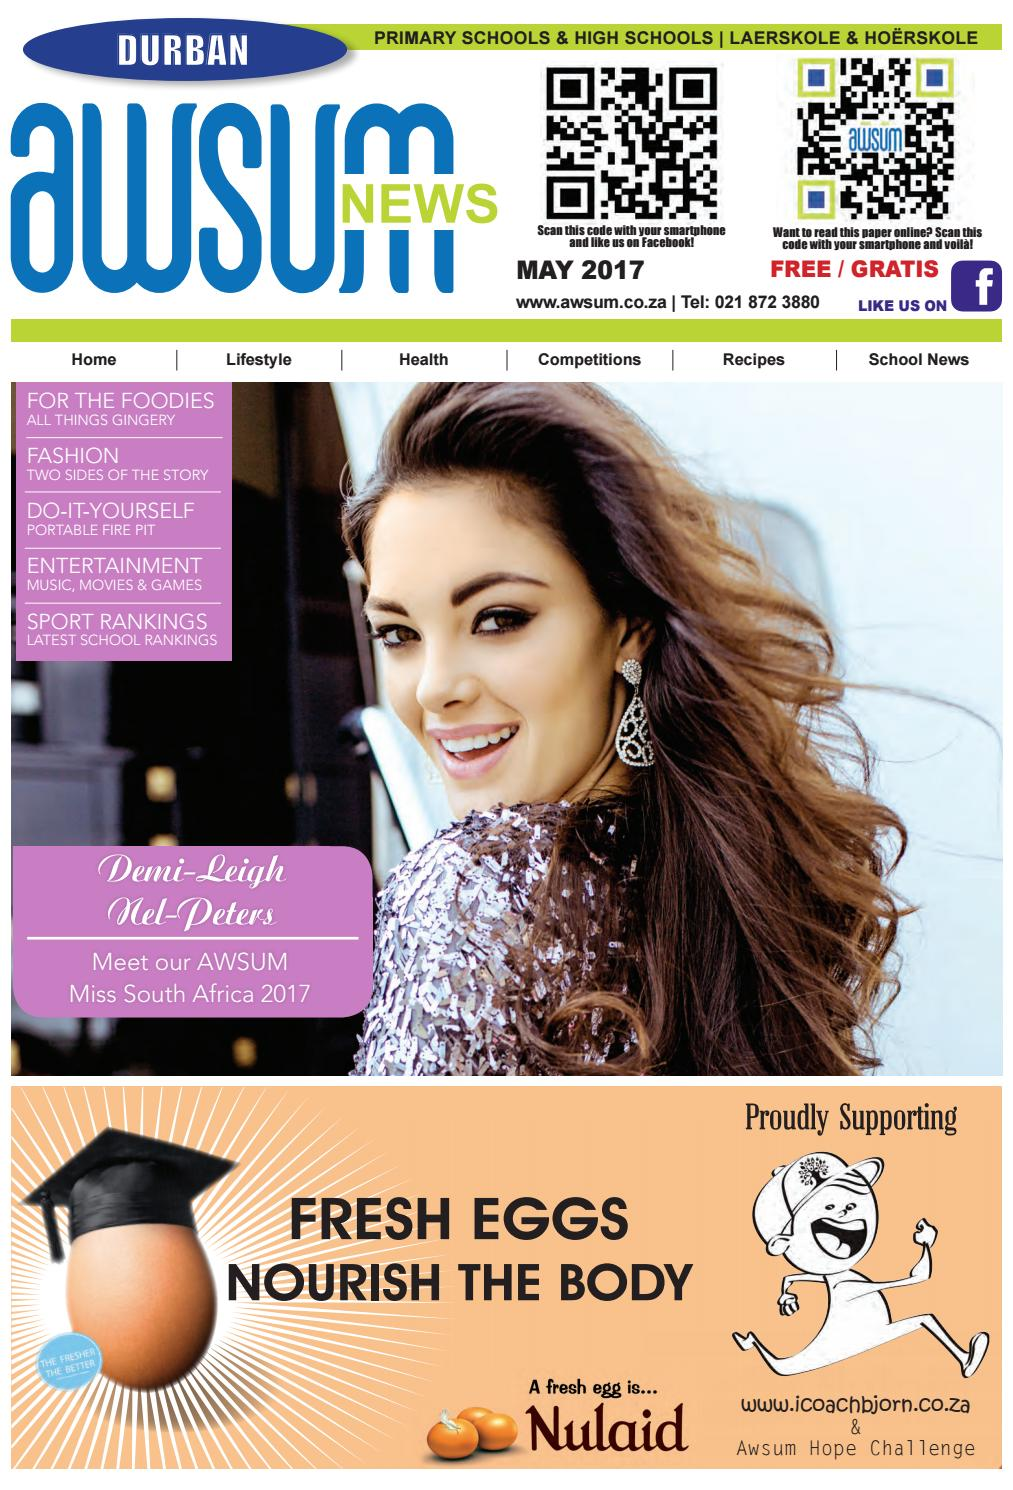 Durban may 2017 primary high schools by awsum news issuu solutioingenieria Images